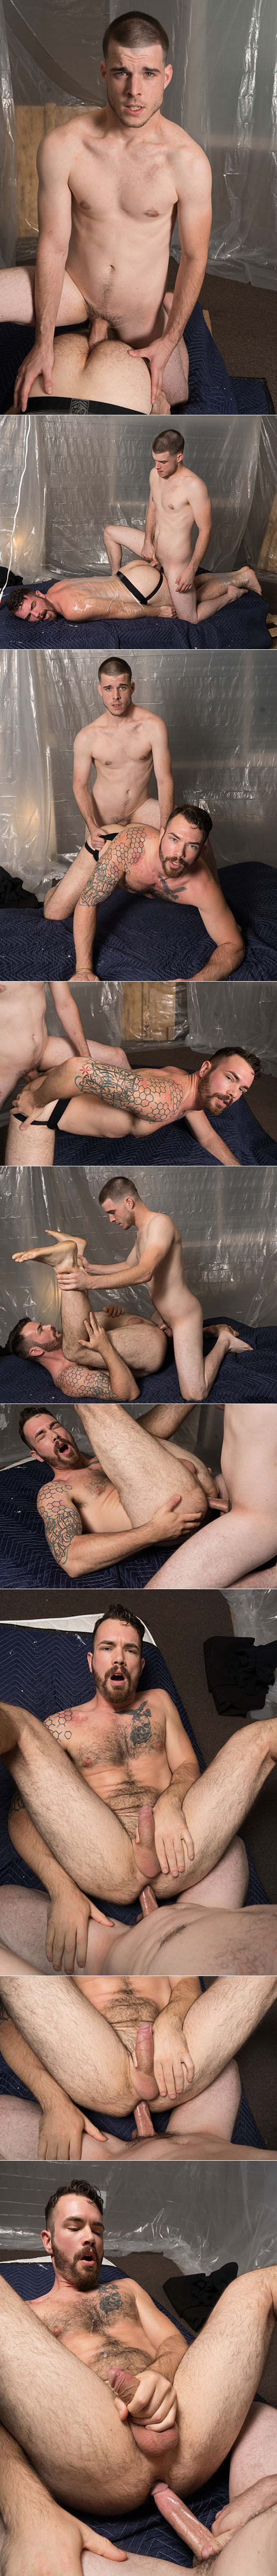 "Bromo: Noah Jones pounds Devin Vex bareback in ""The Fuck Room, Part 1"""